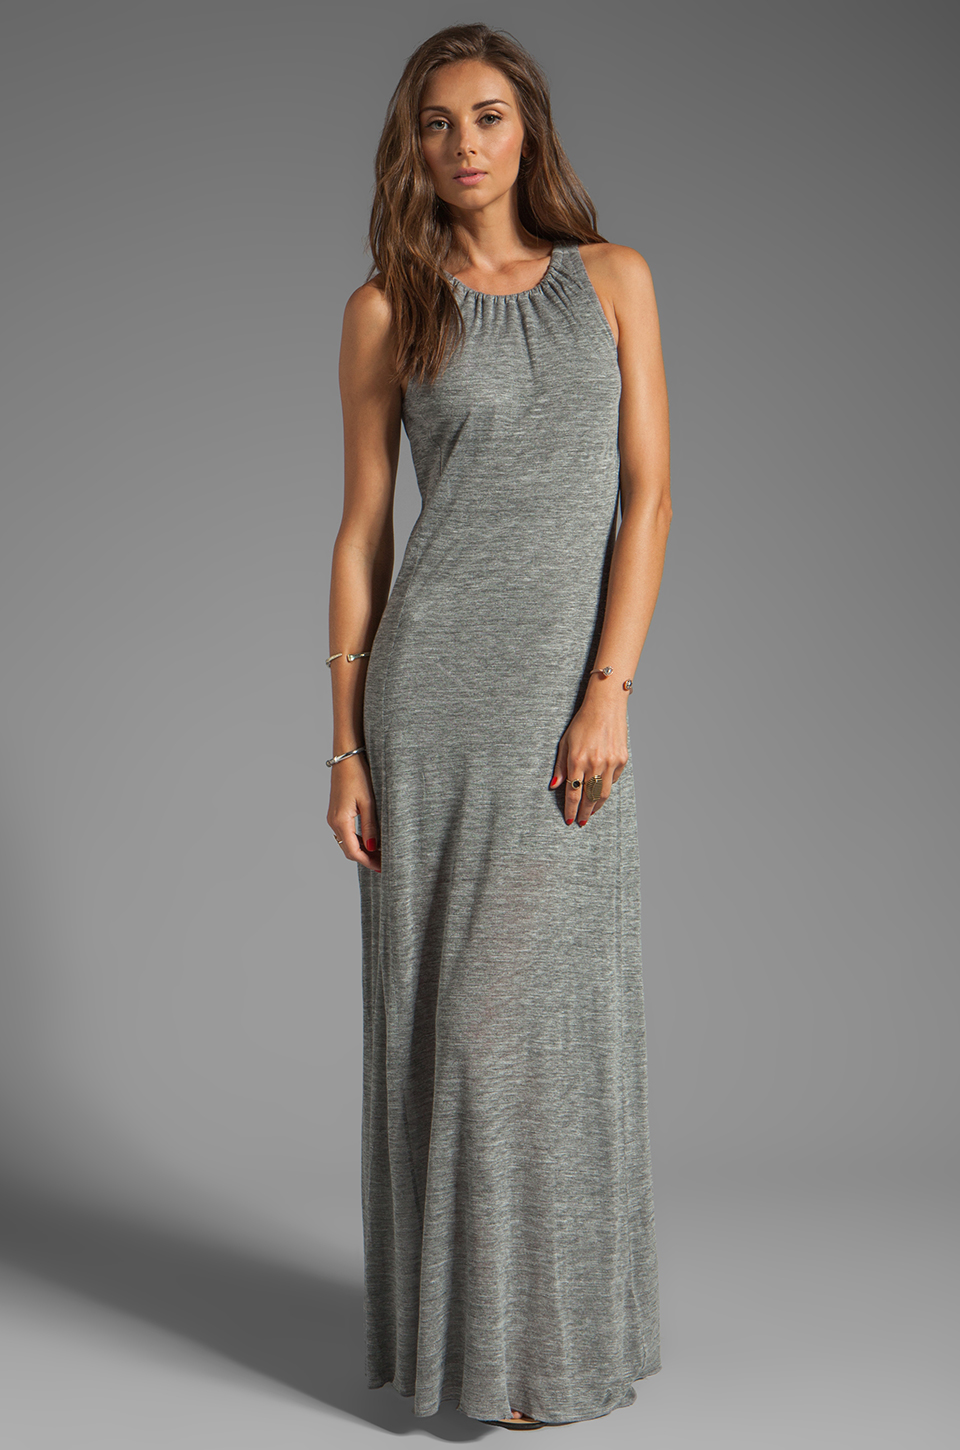 AG Adriano Goldschmied Coquette Maxi Dress in Heather Grey/Antique White